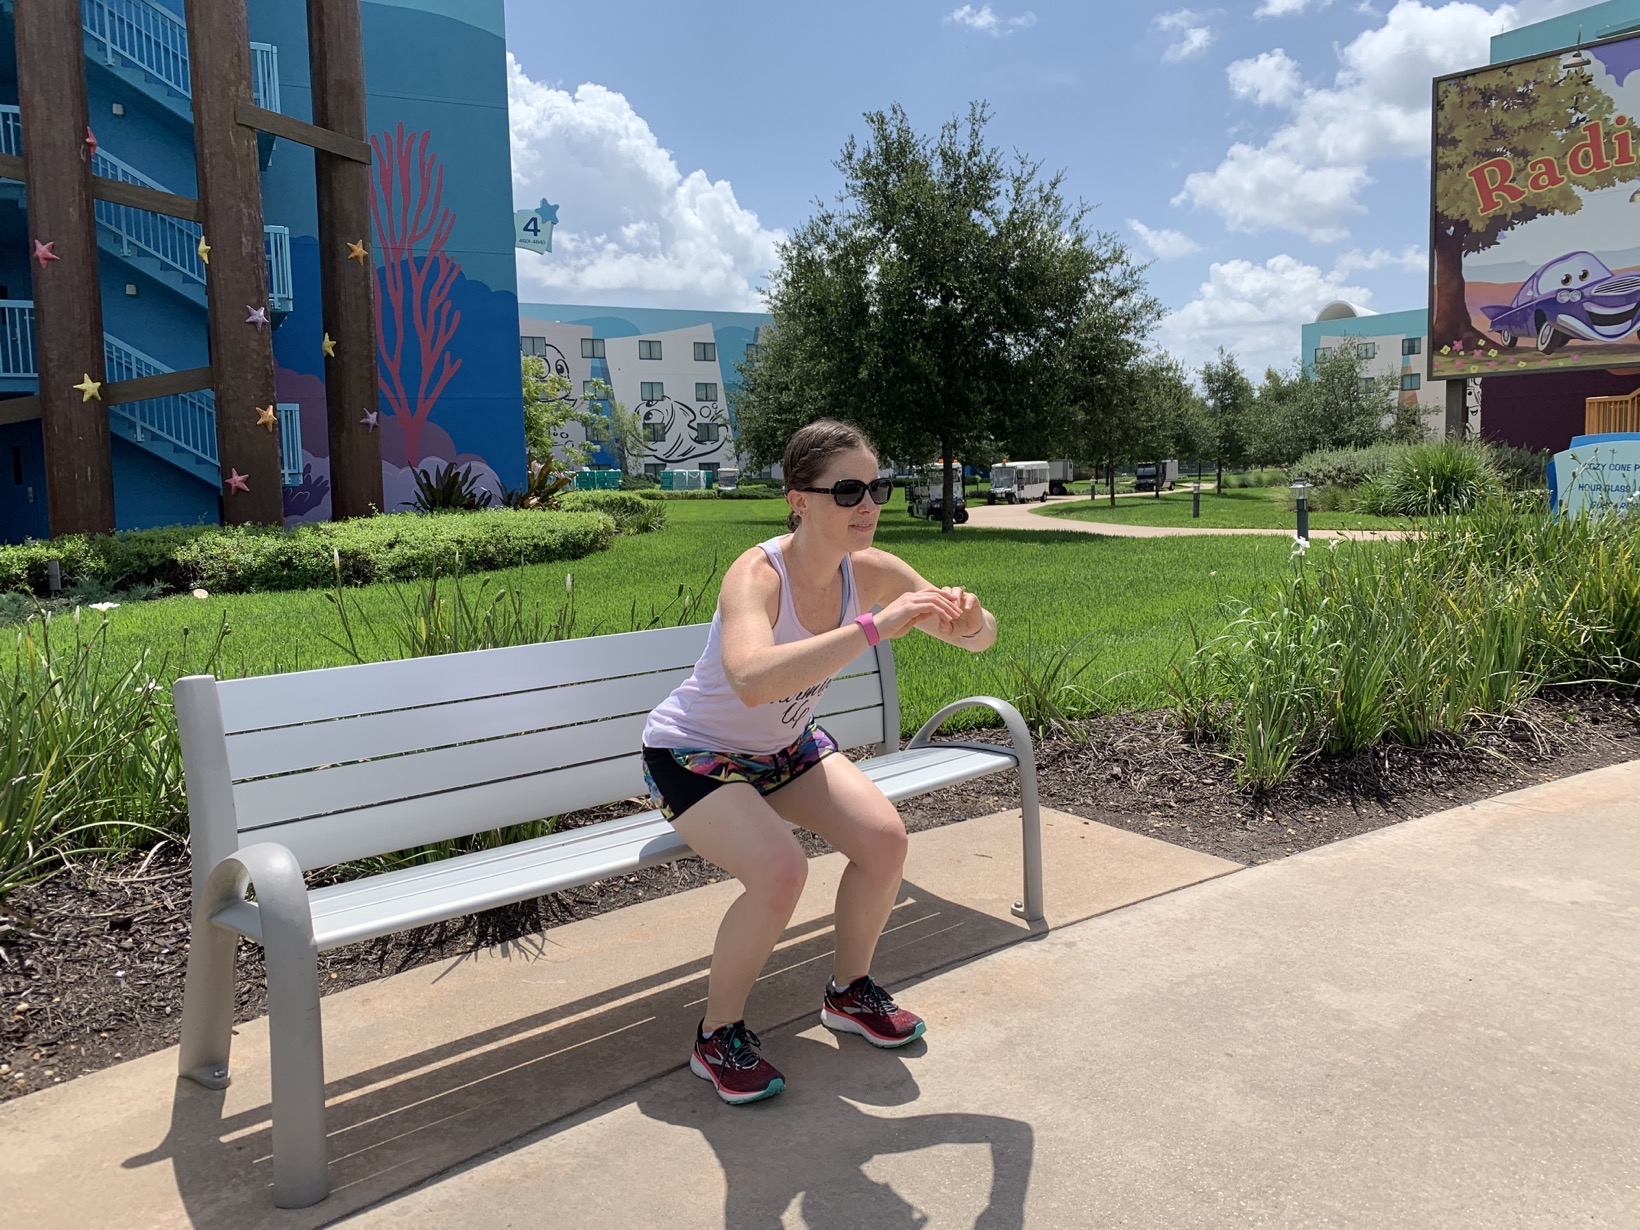 squats on bench at art of animation